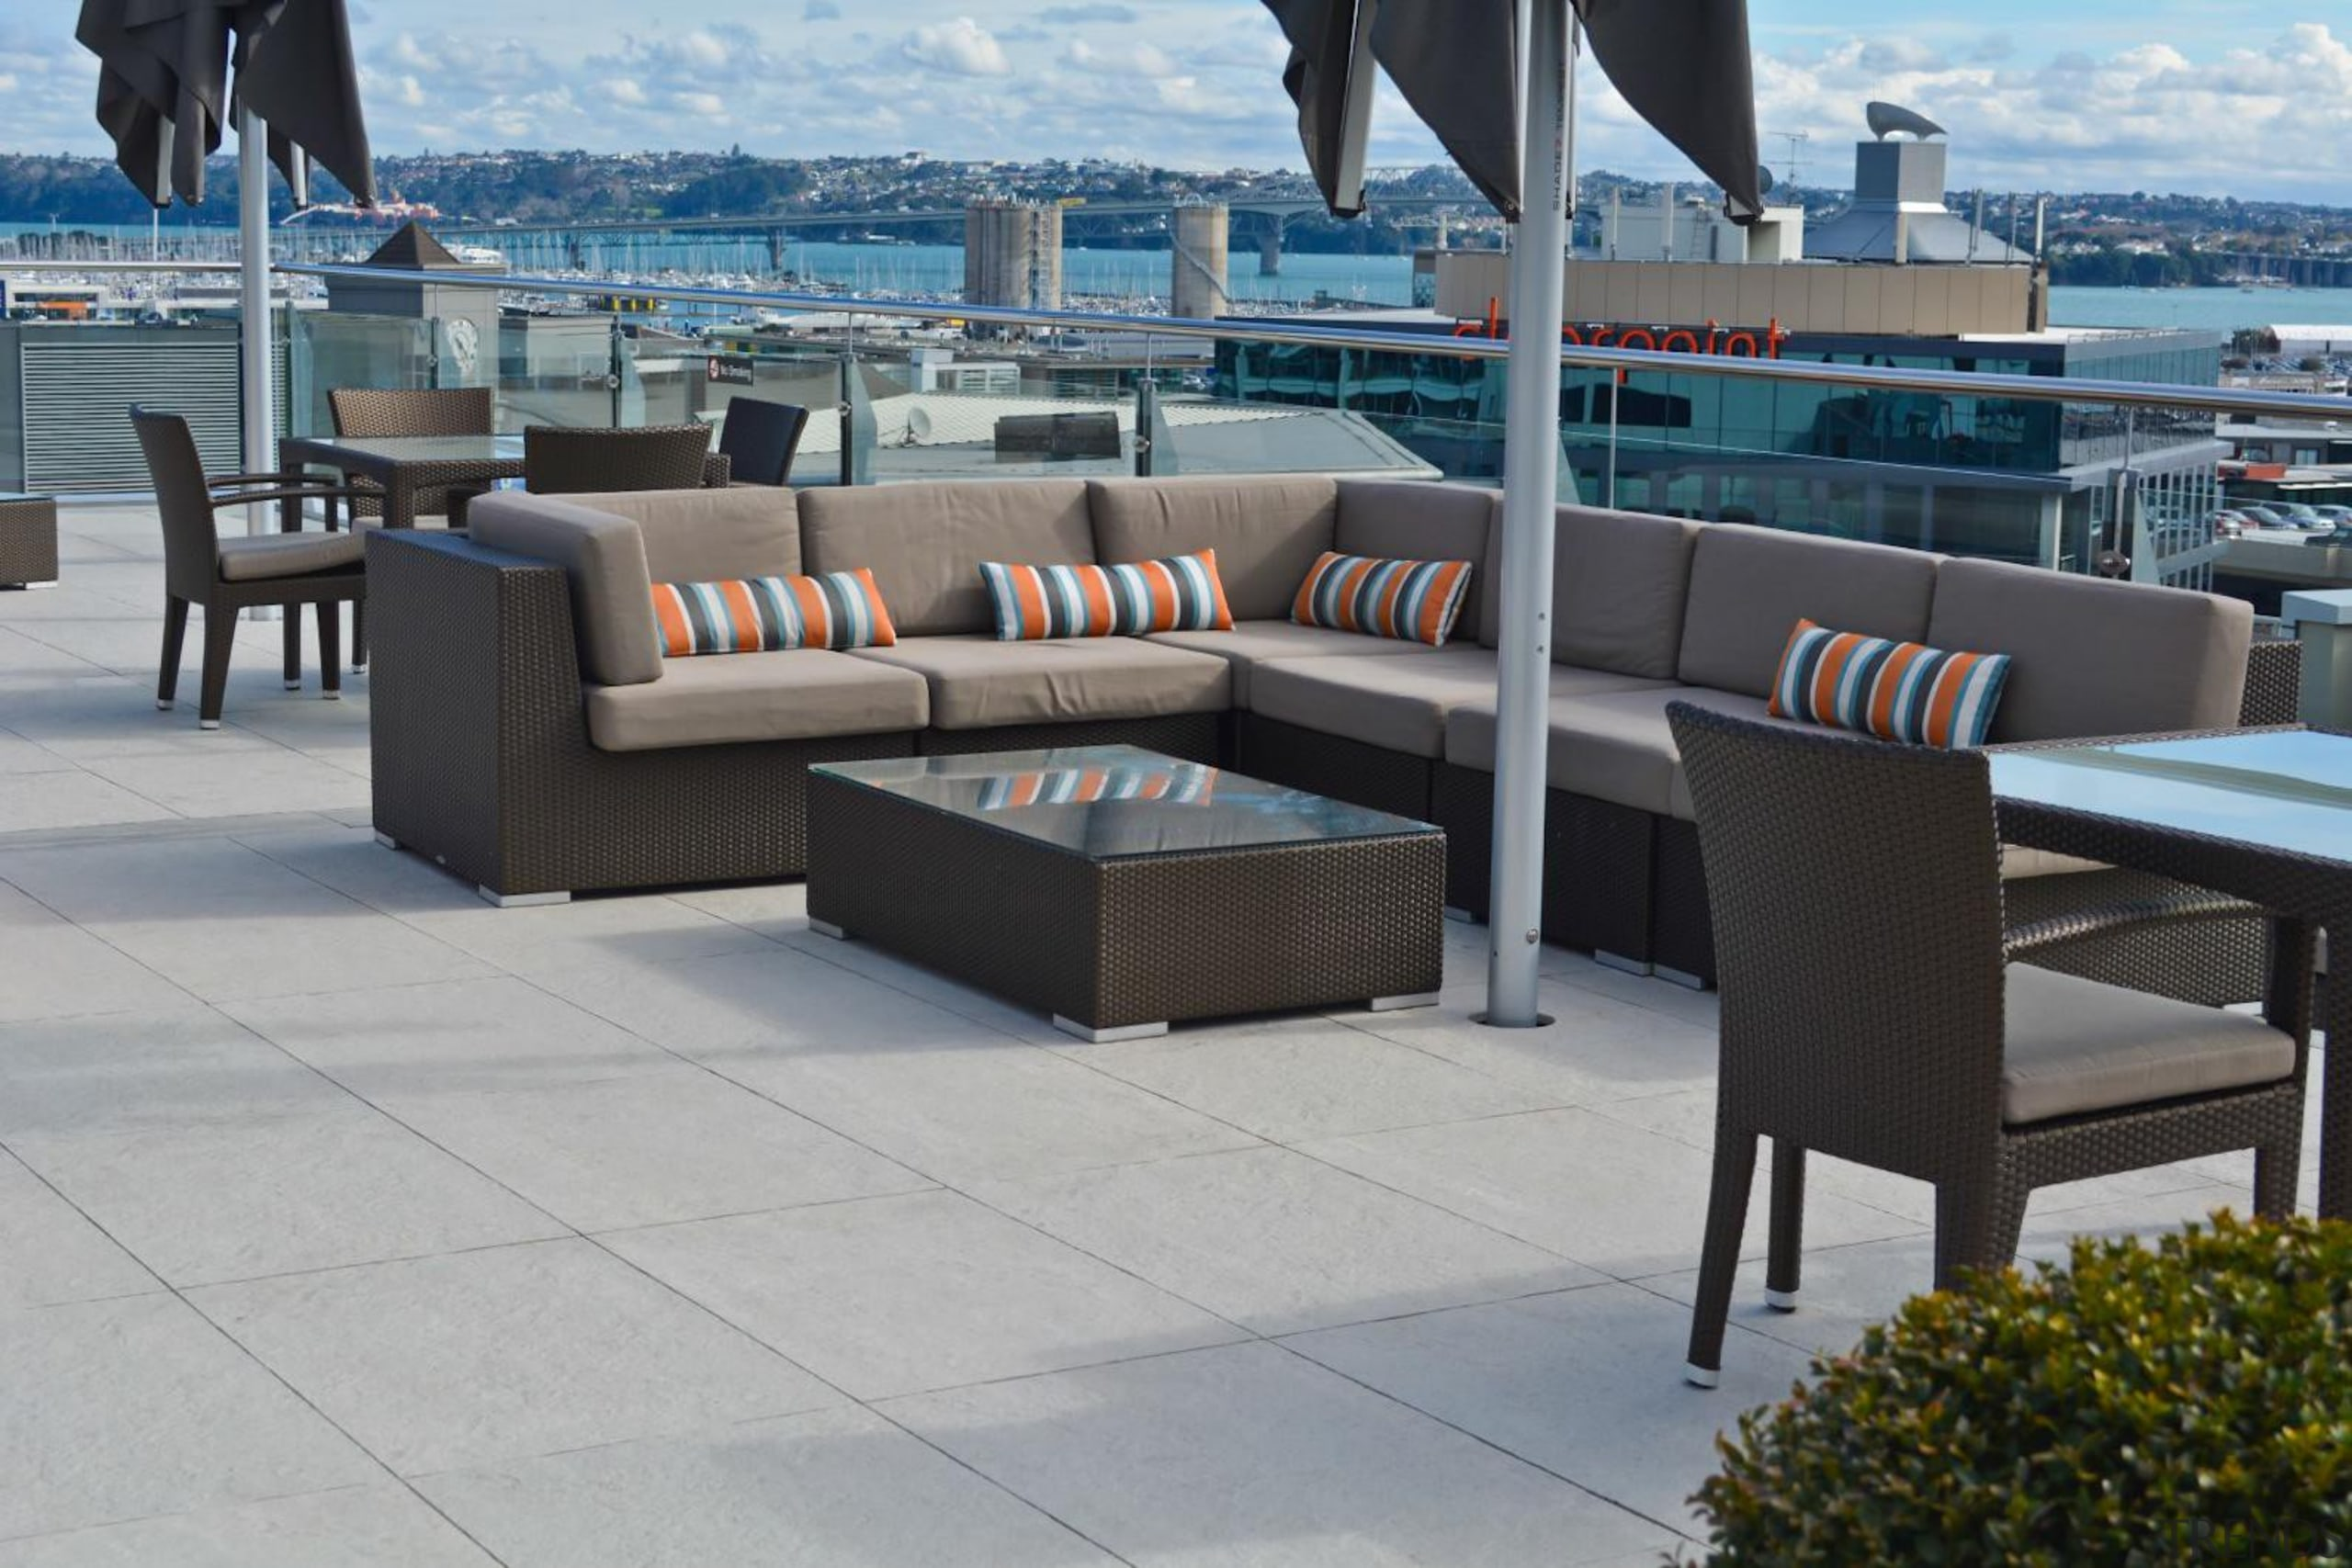 RAK Stone series outdoor tiles here in 600x900x20mm chair, furniture, table, gray